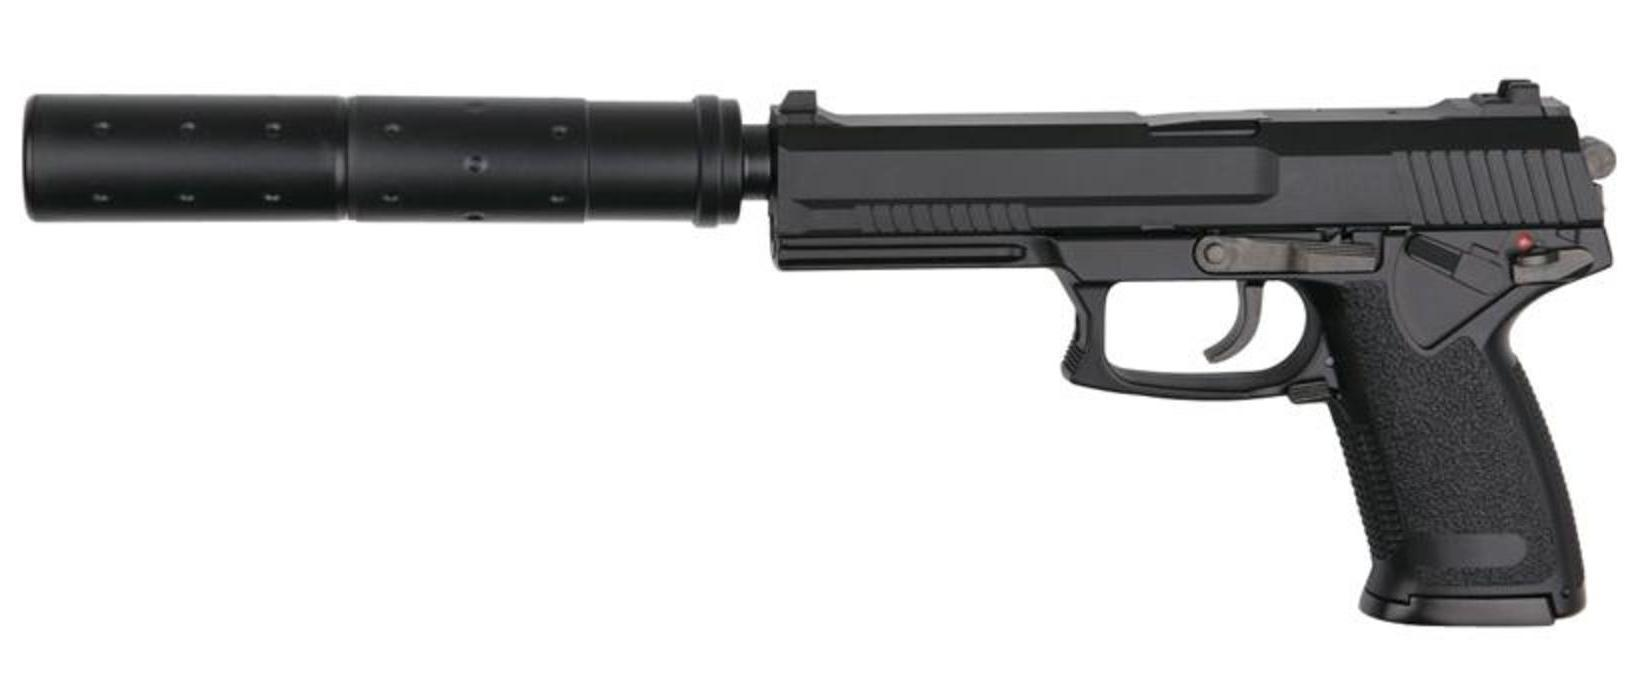 Asg Mk23 Socom Airsoft Pistol With Silencer Gnb Pull